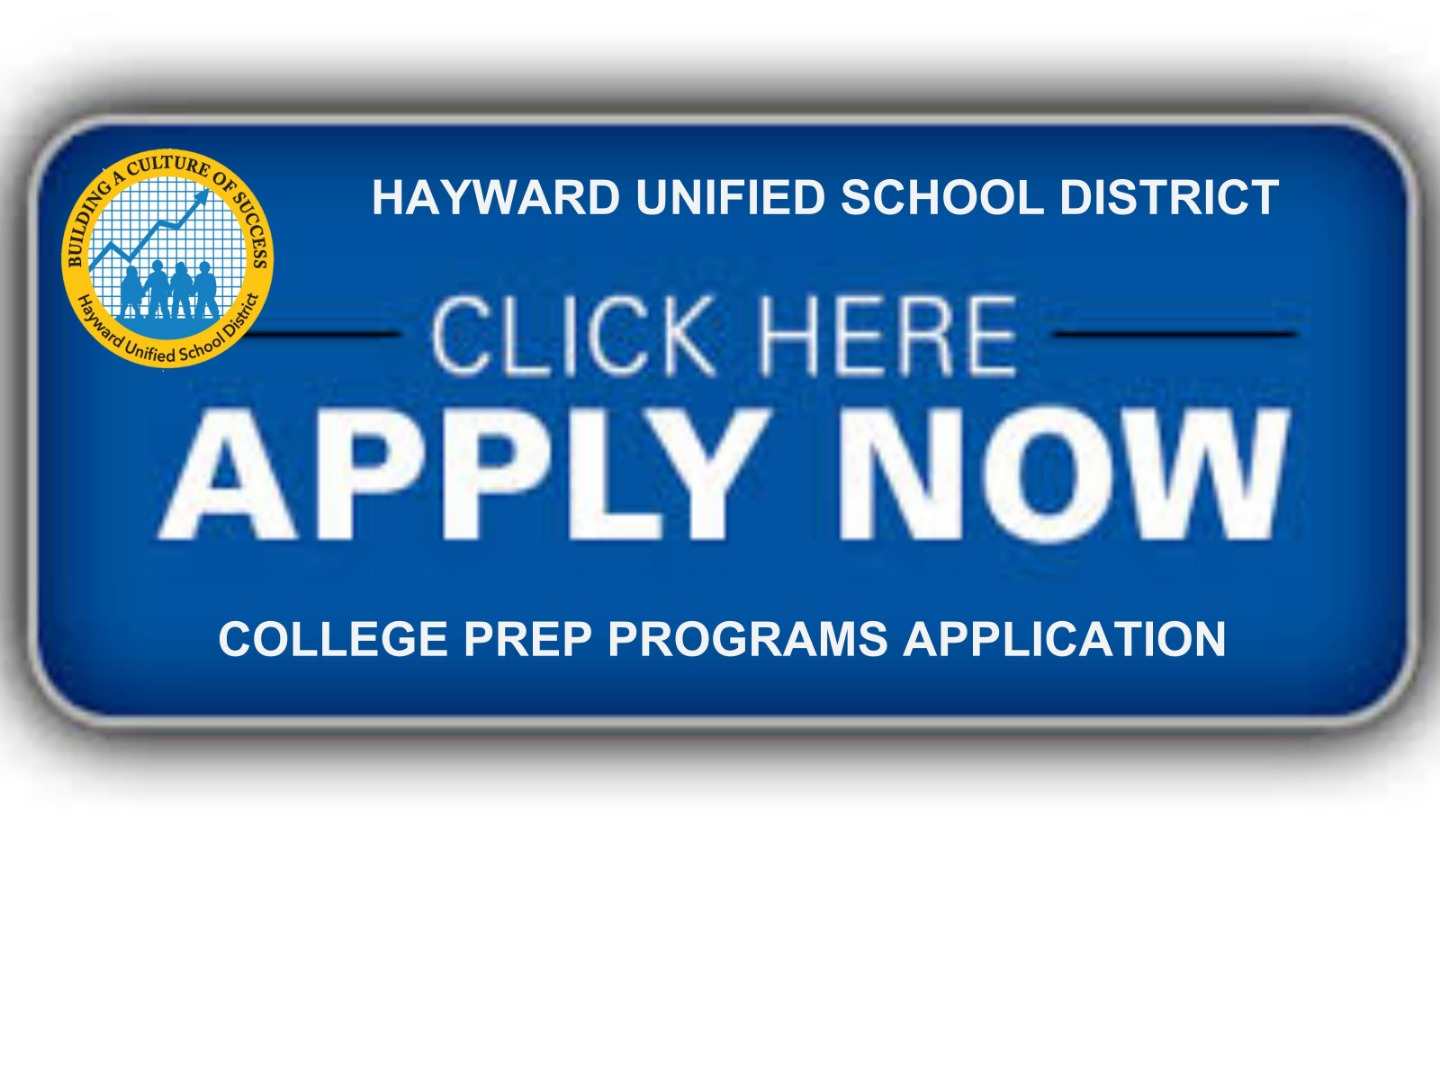 Apply now for college prep programs.